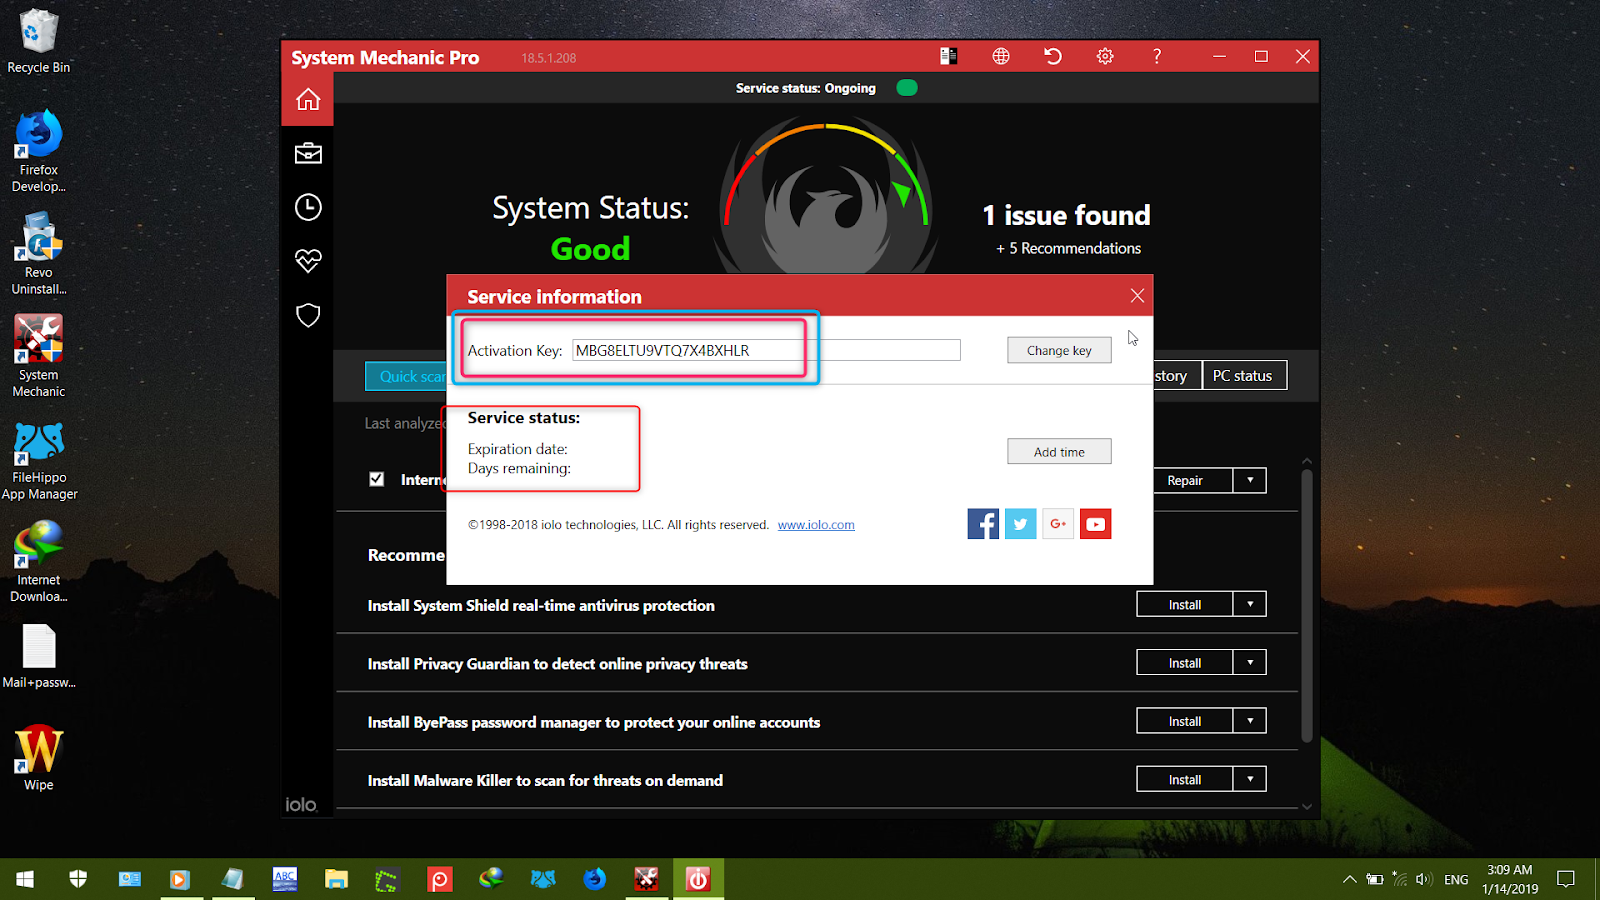 System Mechanic Aloneghost Xz System Mechanic Pro 18 5 1 208 Full Key On Going